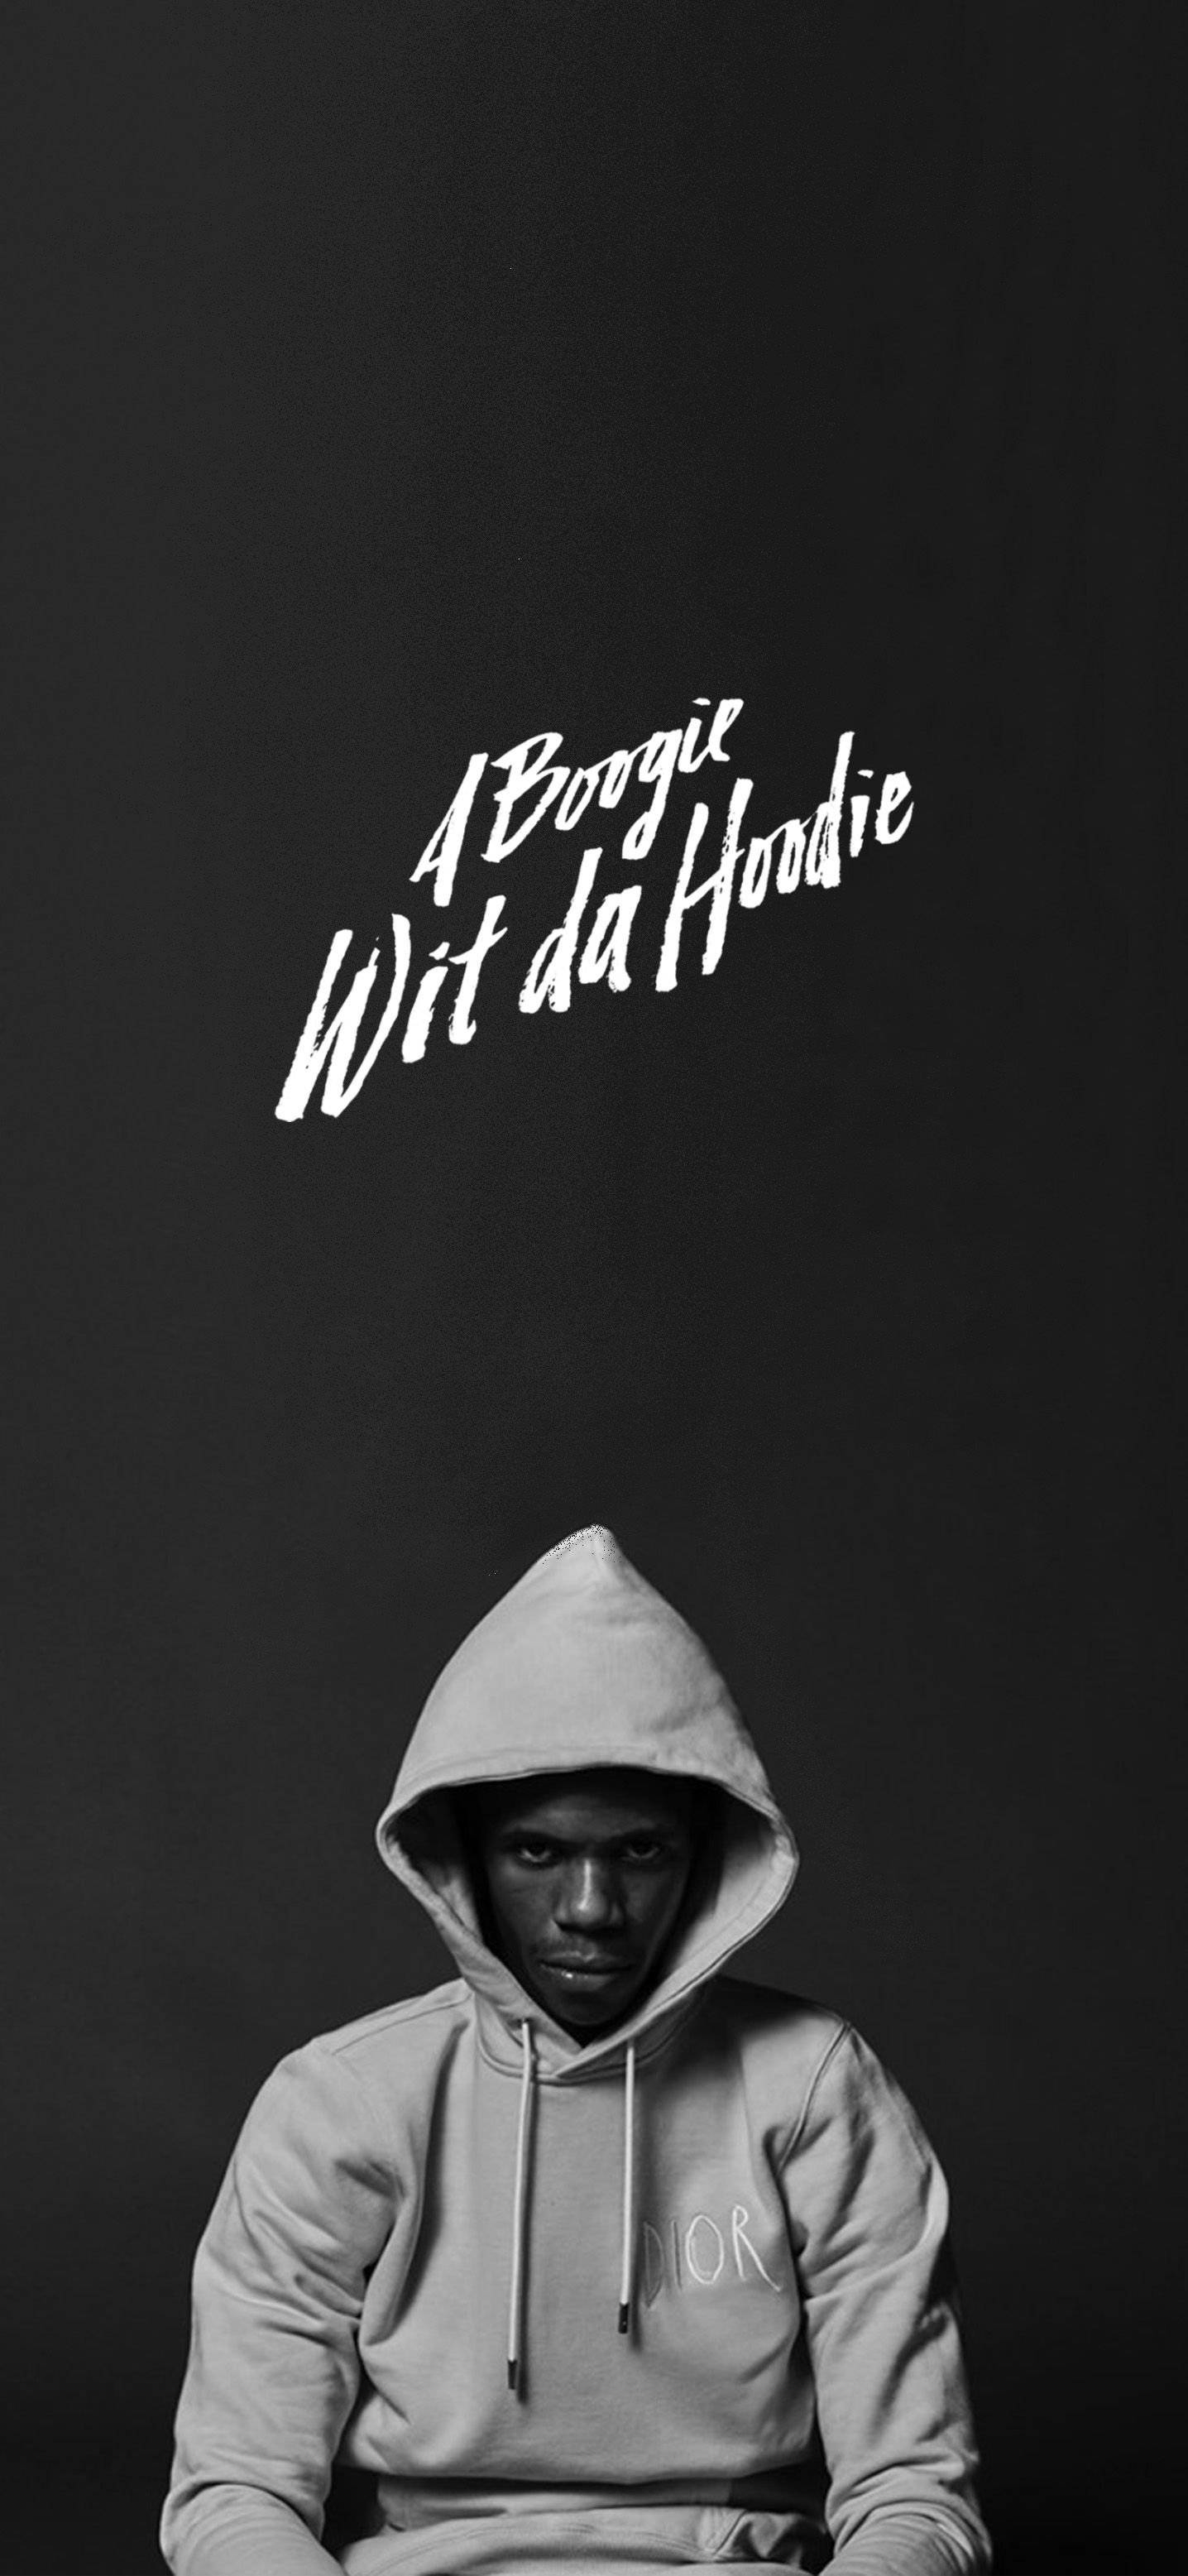 A Boogie Wit Da Hoodie Wallpaper Boogie Wit Da Hoodie Black And White Aesthetic Rap Wallpaper